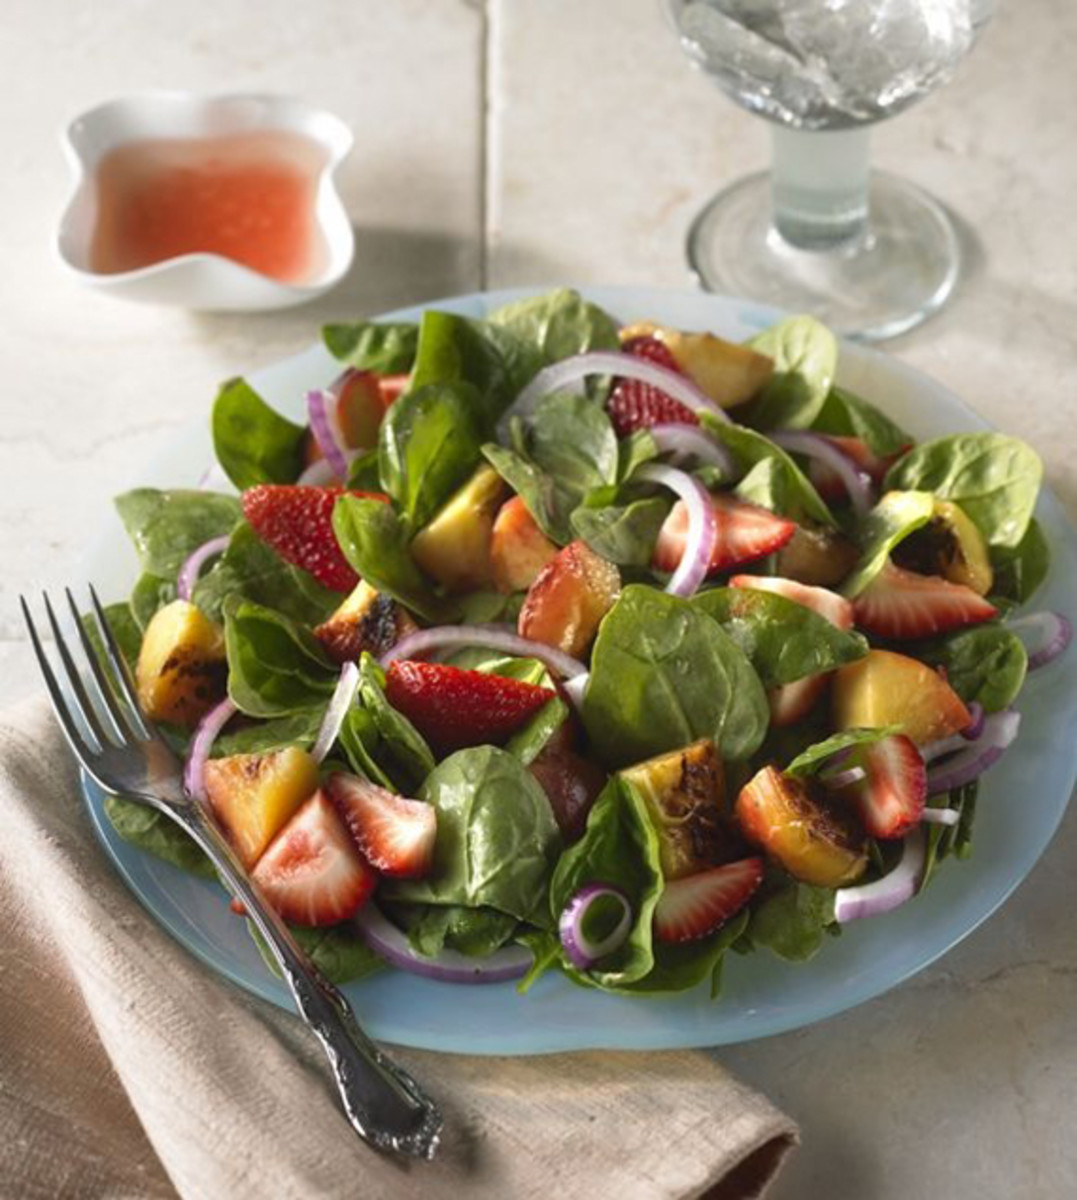 Spinach Salad with Grilled and Fresh Fruit